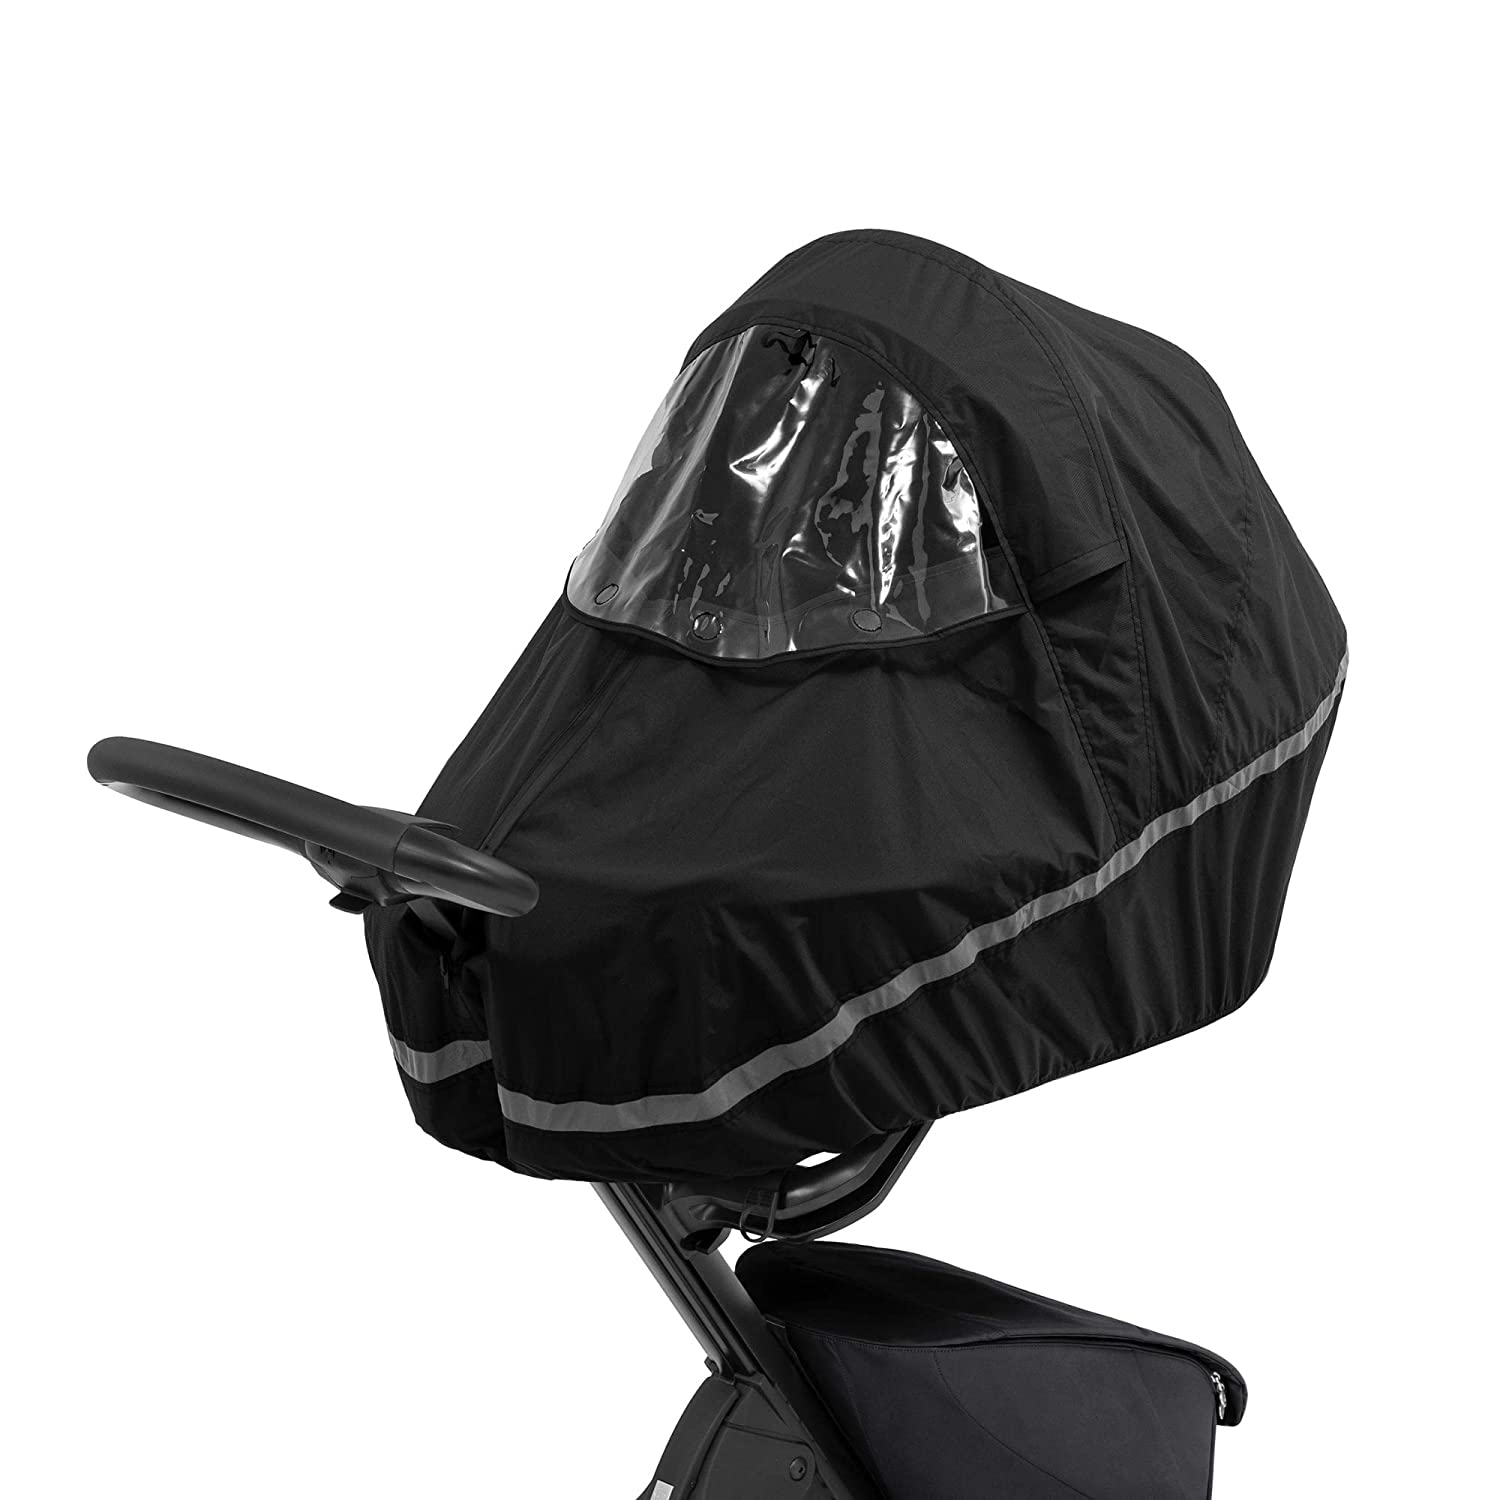 Stokke Xplory X Rain Cover, Black - Keep Baby Dry - Easy to Use, Transport & Store - Integrated Ventilation, Large Window & Safety Reflectors - Made from Water-Repellent Fabrics